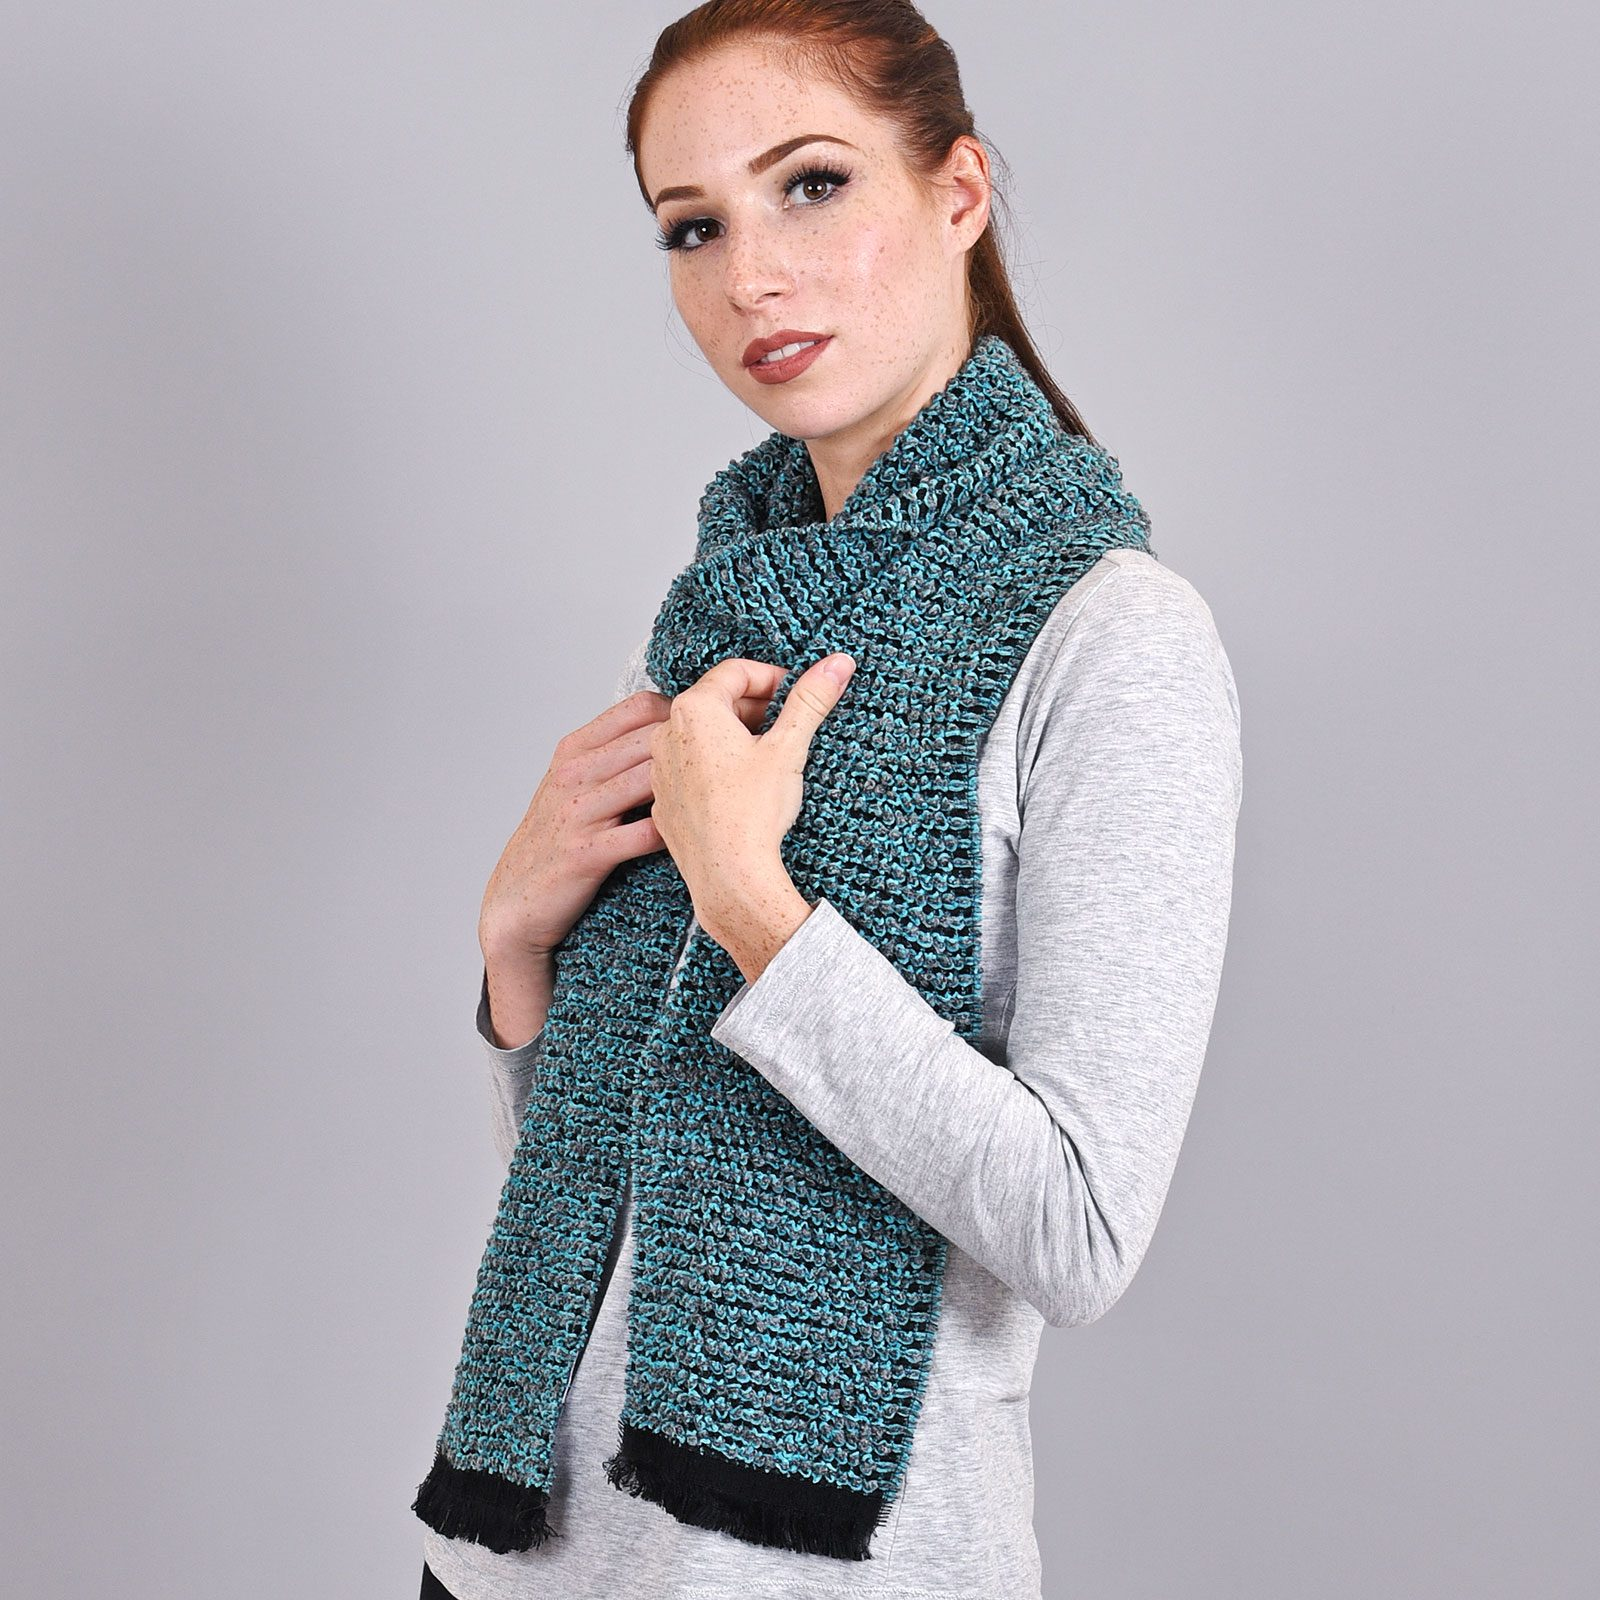 http://lookbook.allee-du-foulard.fr/wp-content/uploads/2019/01/AT-03479-VF16-echarpe-femme-fabrication-france-turquoise-1600x1600.jpg